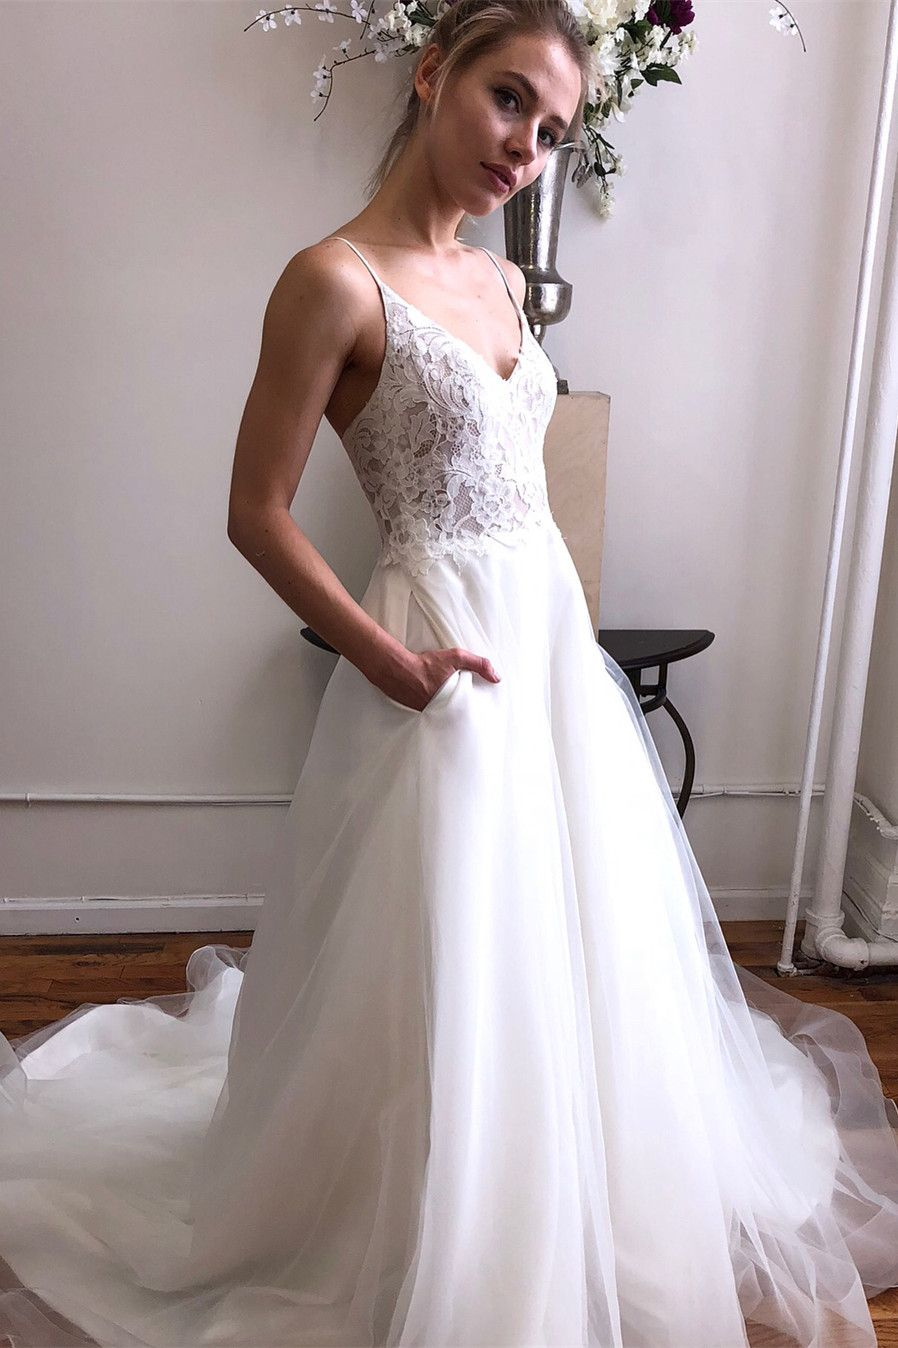 Spaghetti Straps White Long Bridal Dress With Pockets 2019 Tulle Long Wedding Dress With Lace T Wedding Dress With Pockets Wedding Dresses New Wedding Dresses